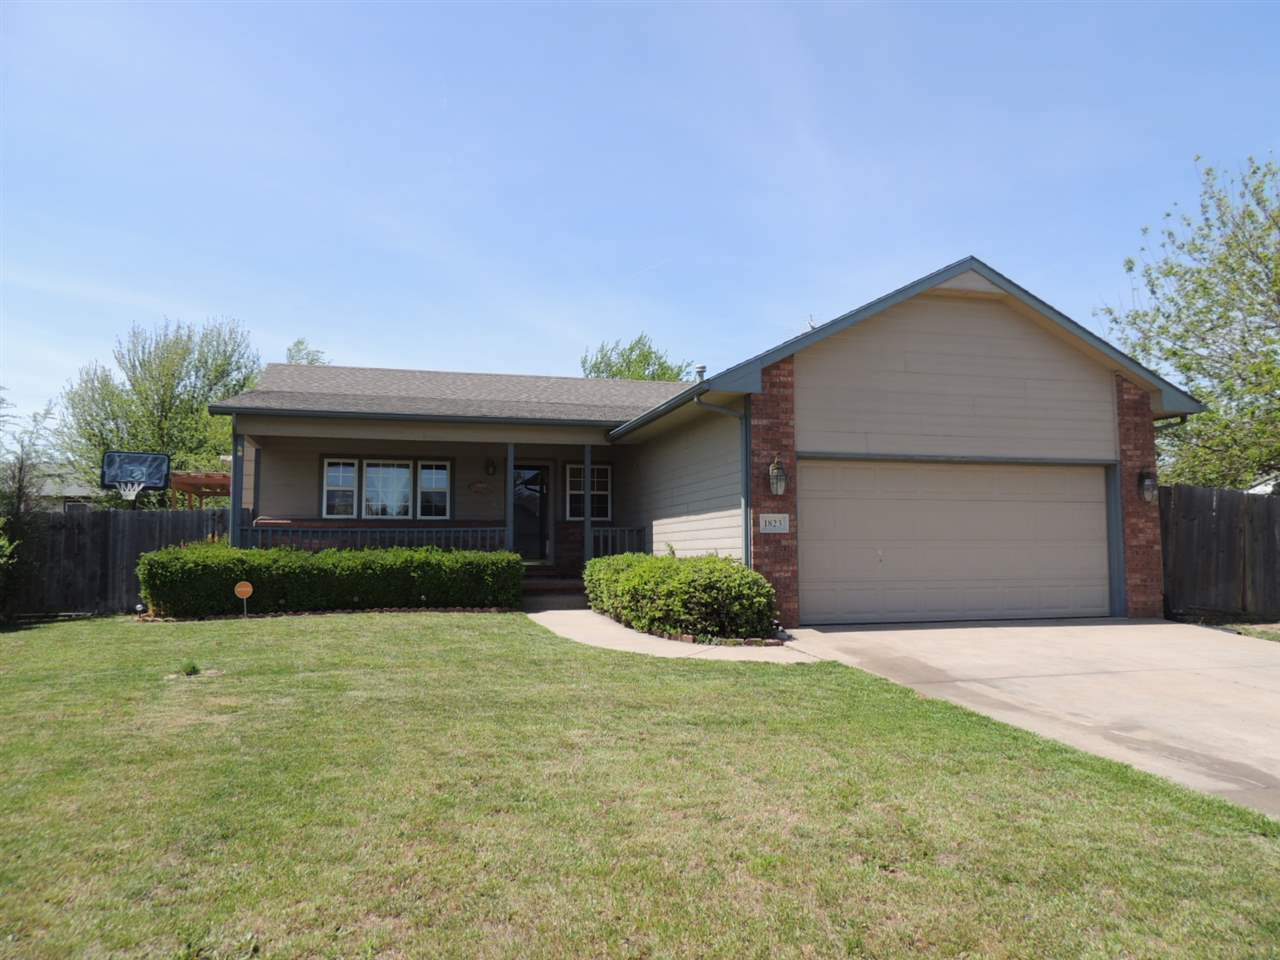 1823 S Brandon St, Wichita, KS 67207